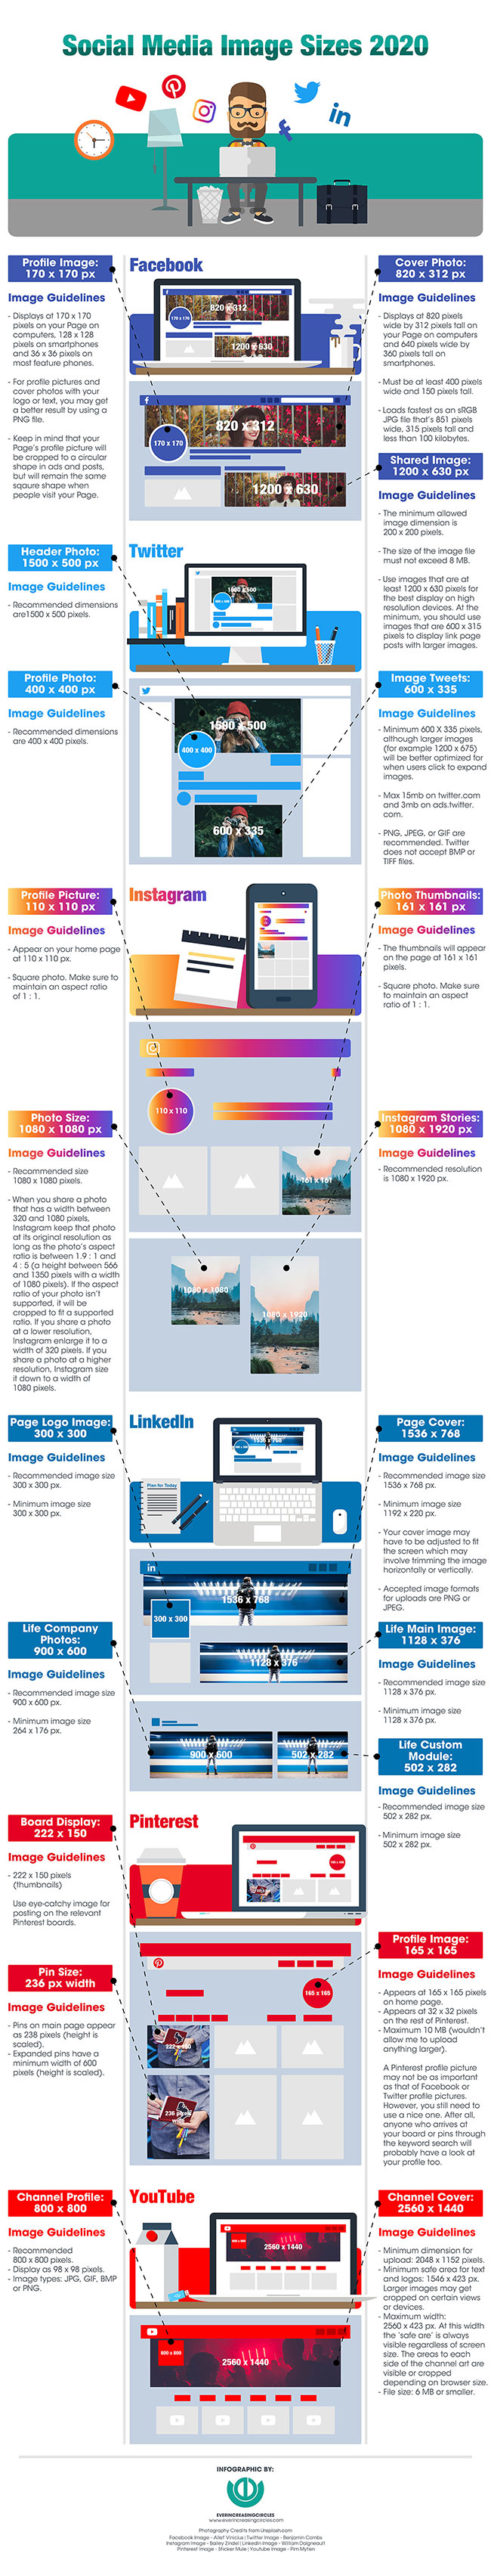 Your Bookmarkable Guide to Social Media Image Sizes in 2020 Infographic Image